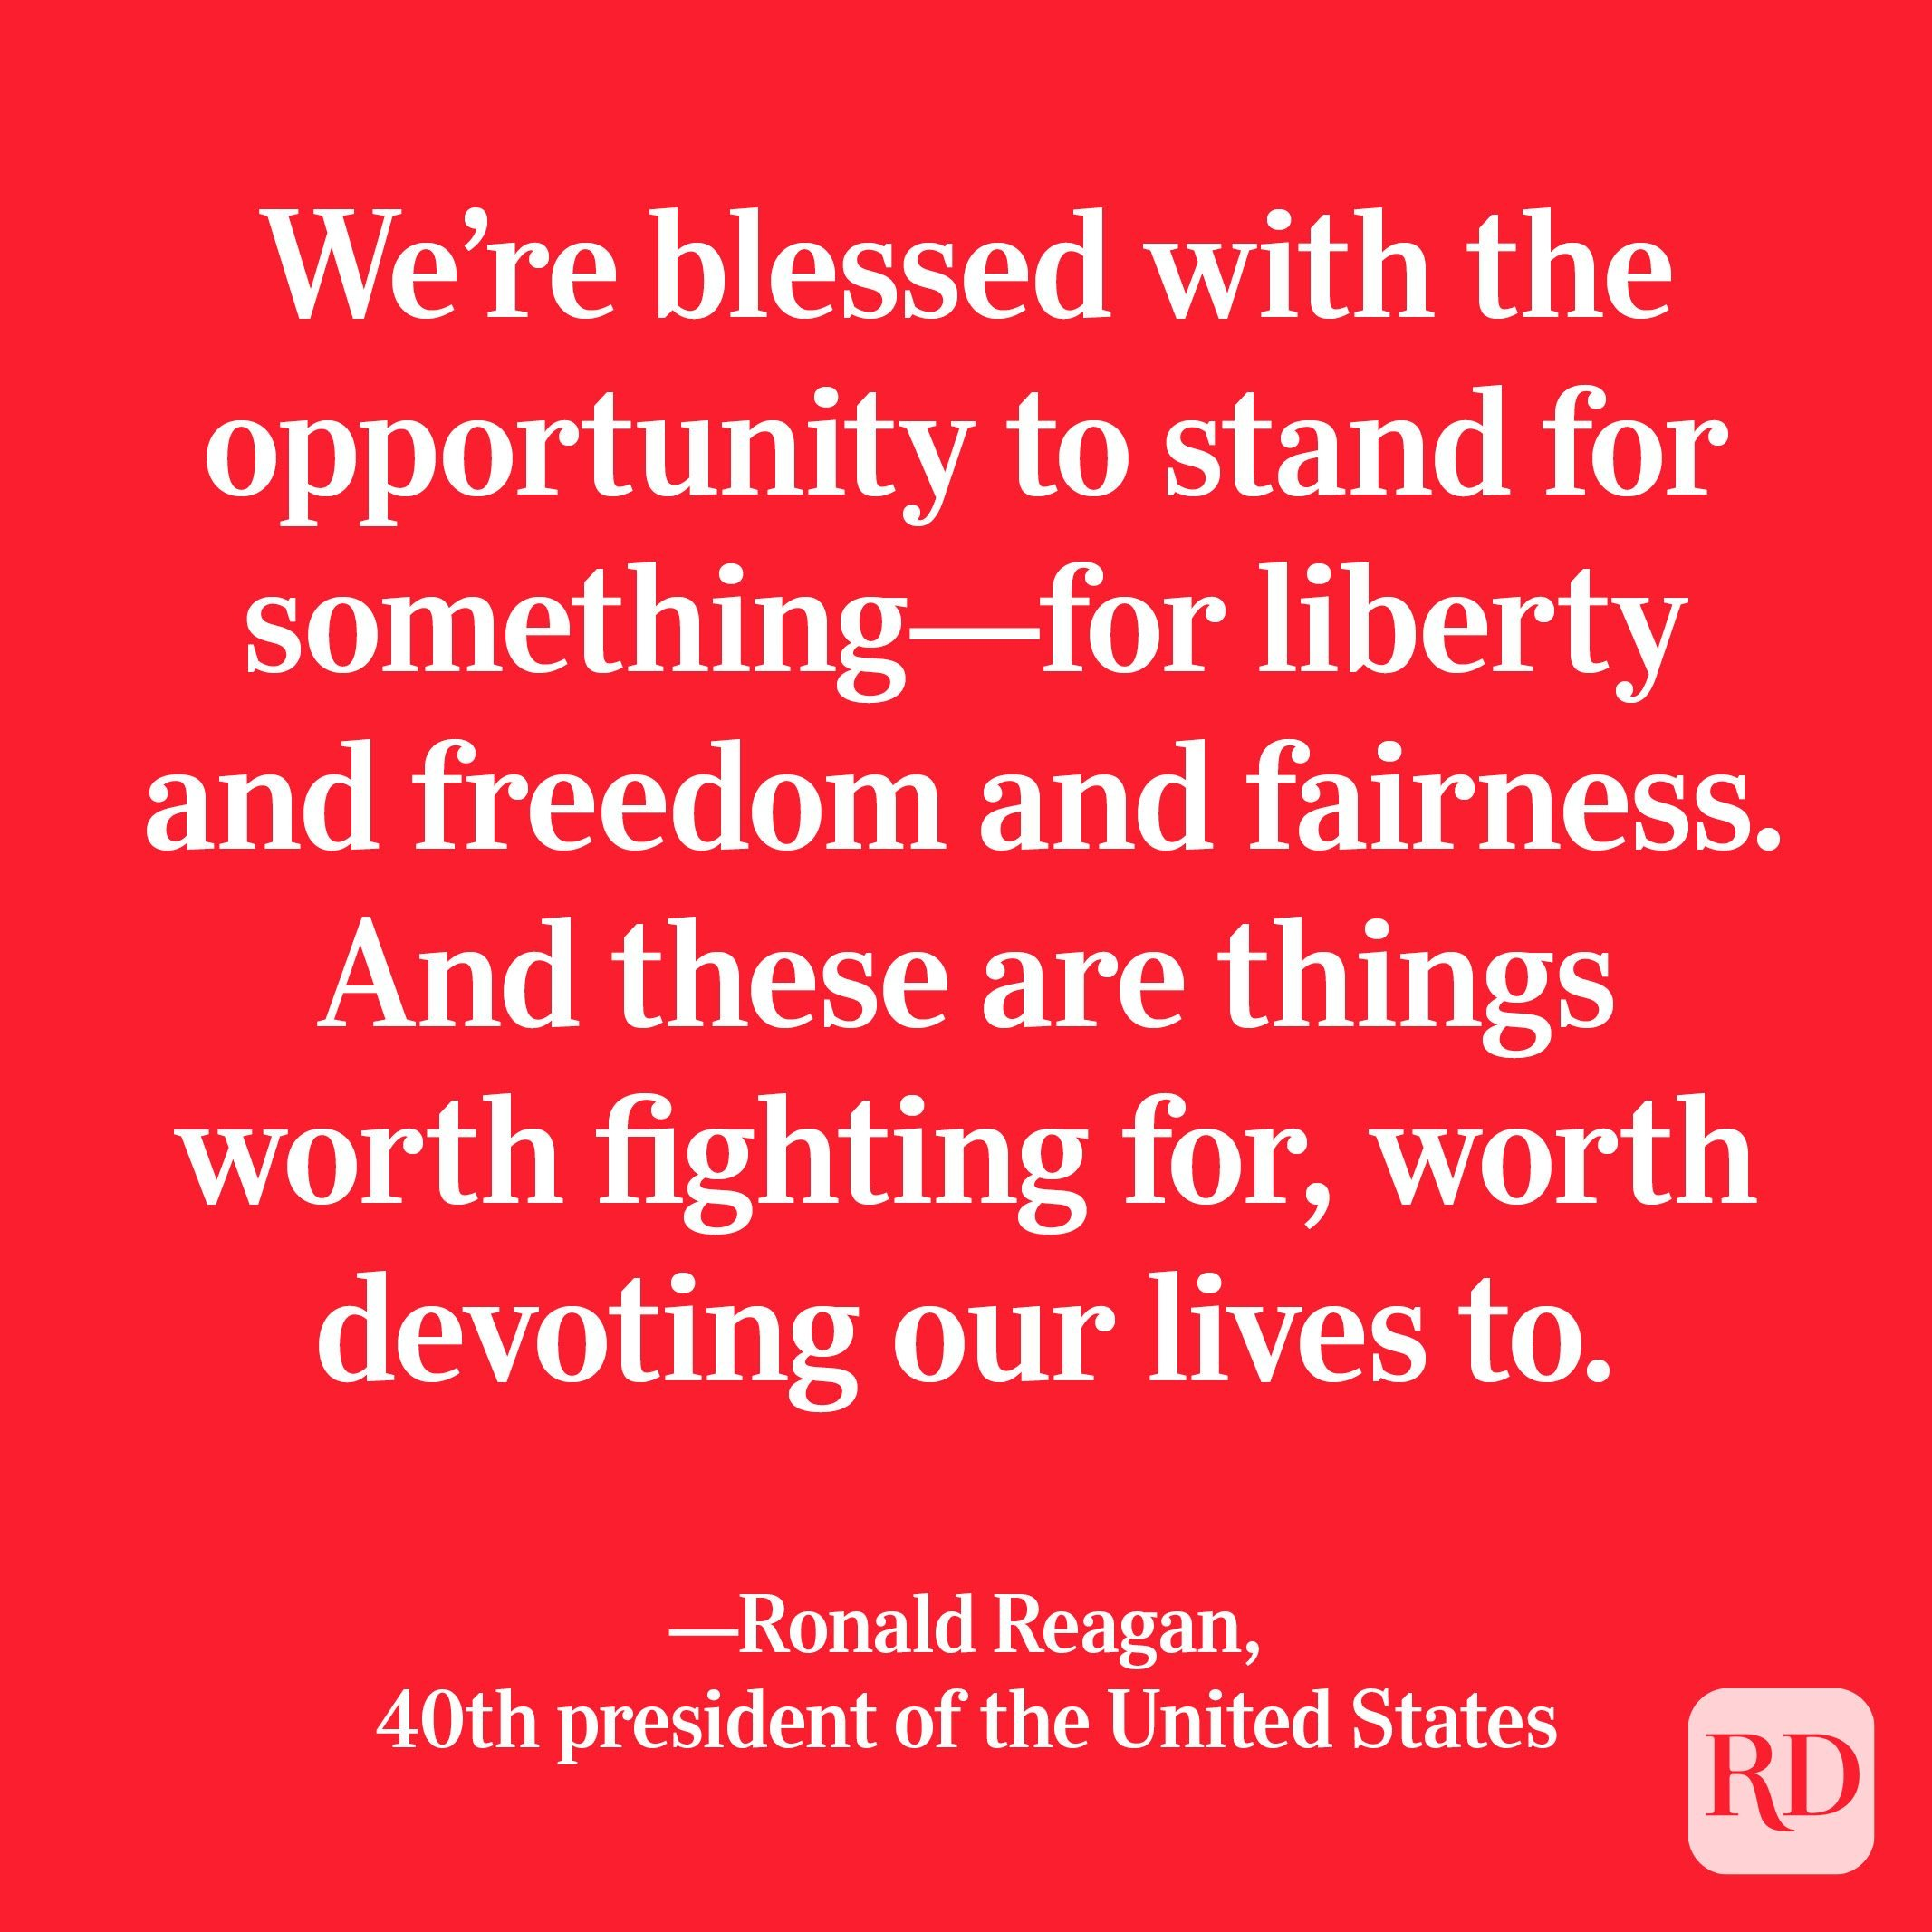 """""""We're blessed with the opportunity to stand for something—for liberty and freedom and fairness. And these are things worth fighting for, worth devoting our lives to."""" —Ronald Reagan, 40th president of the United States"""